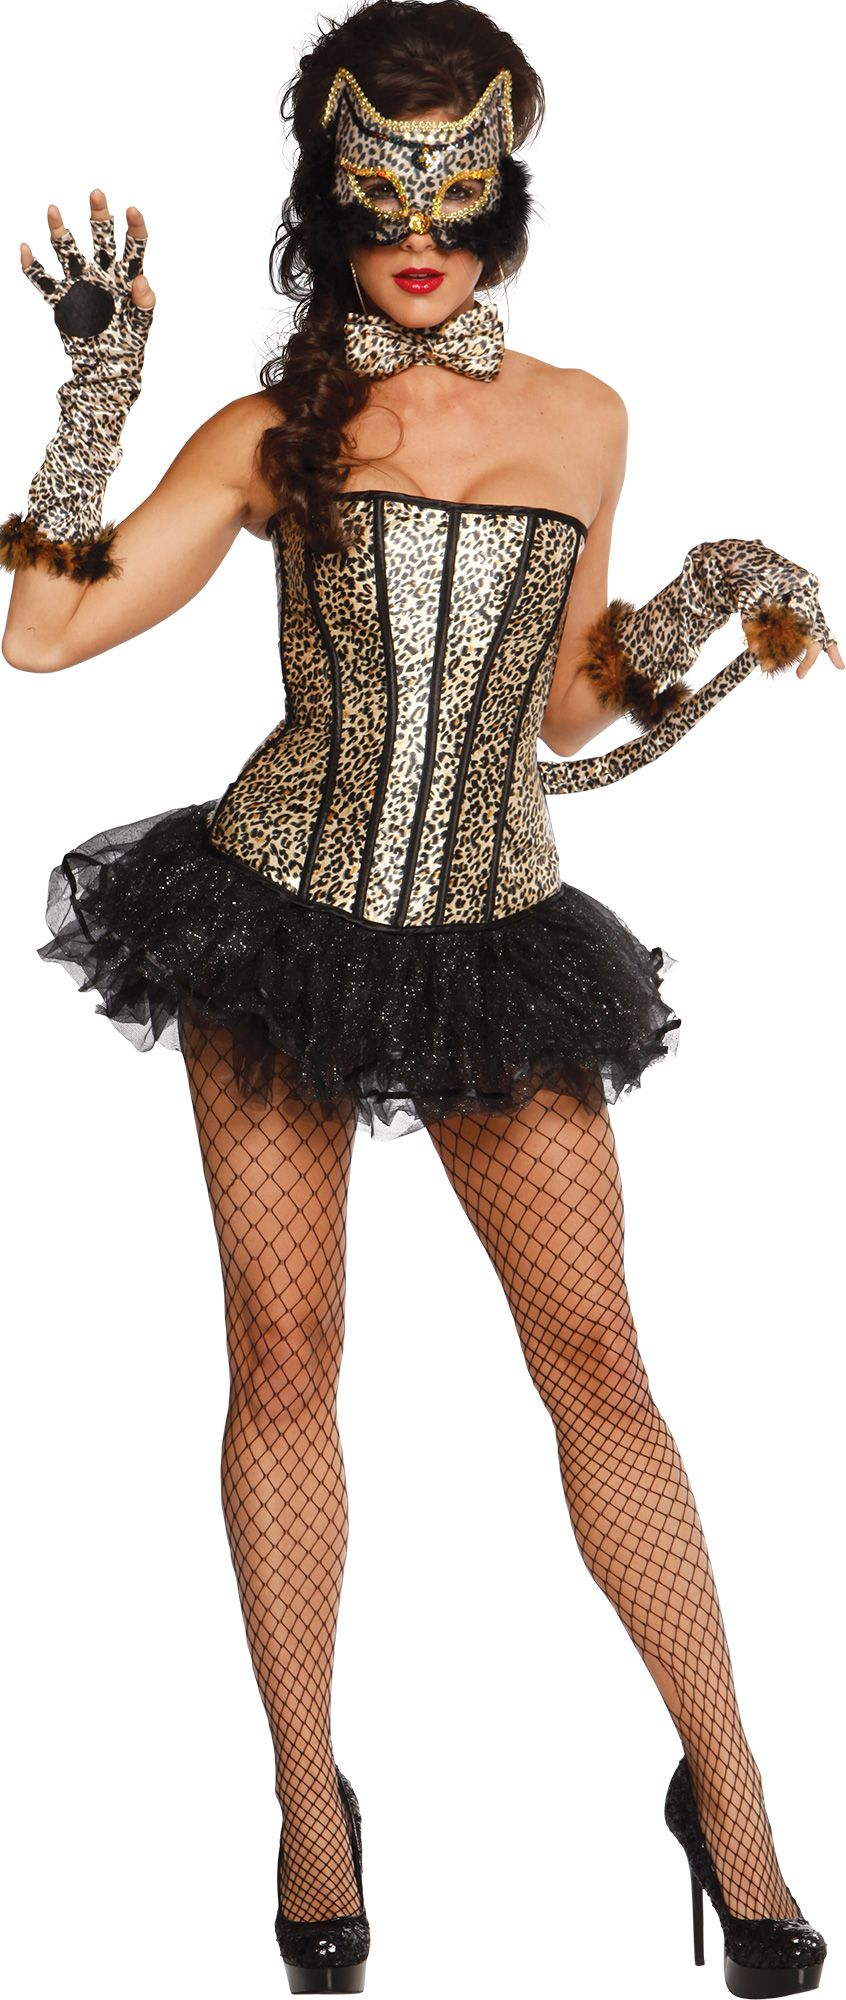 Make Your Costume - Womens Pretty Kitty Costume #2